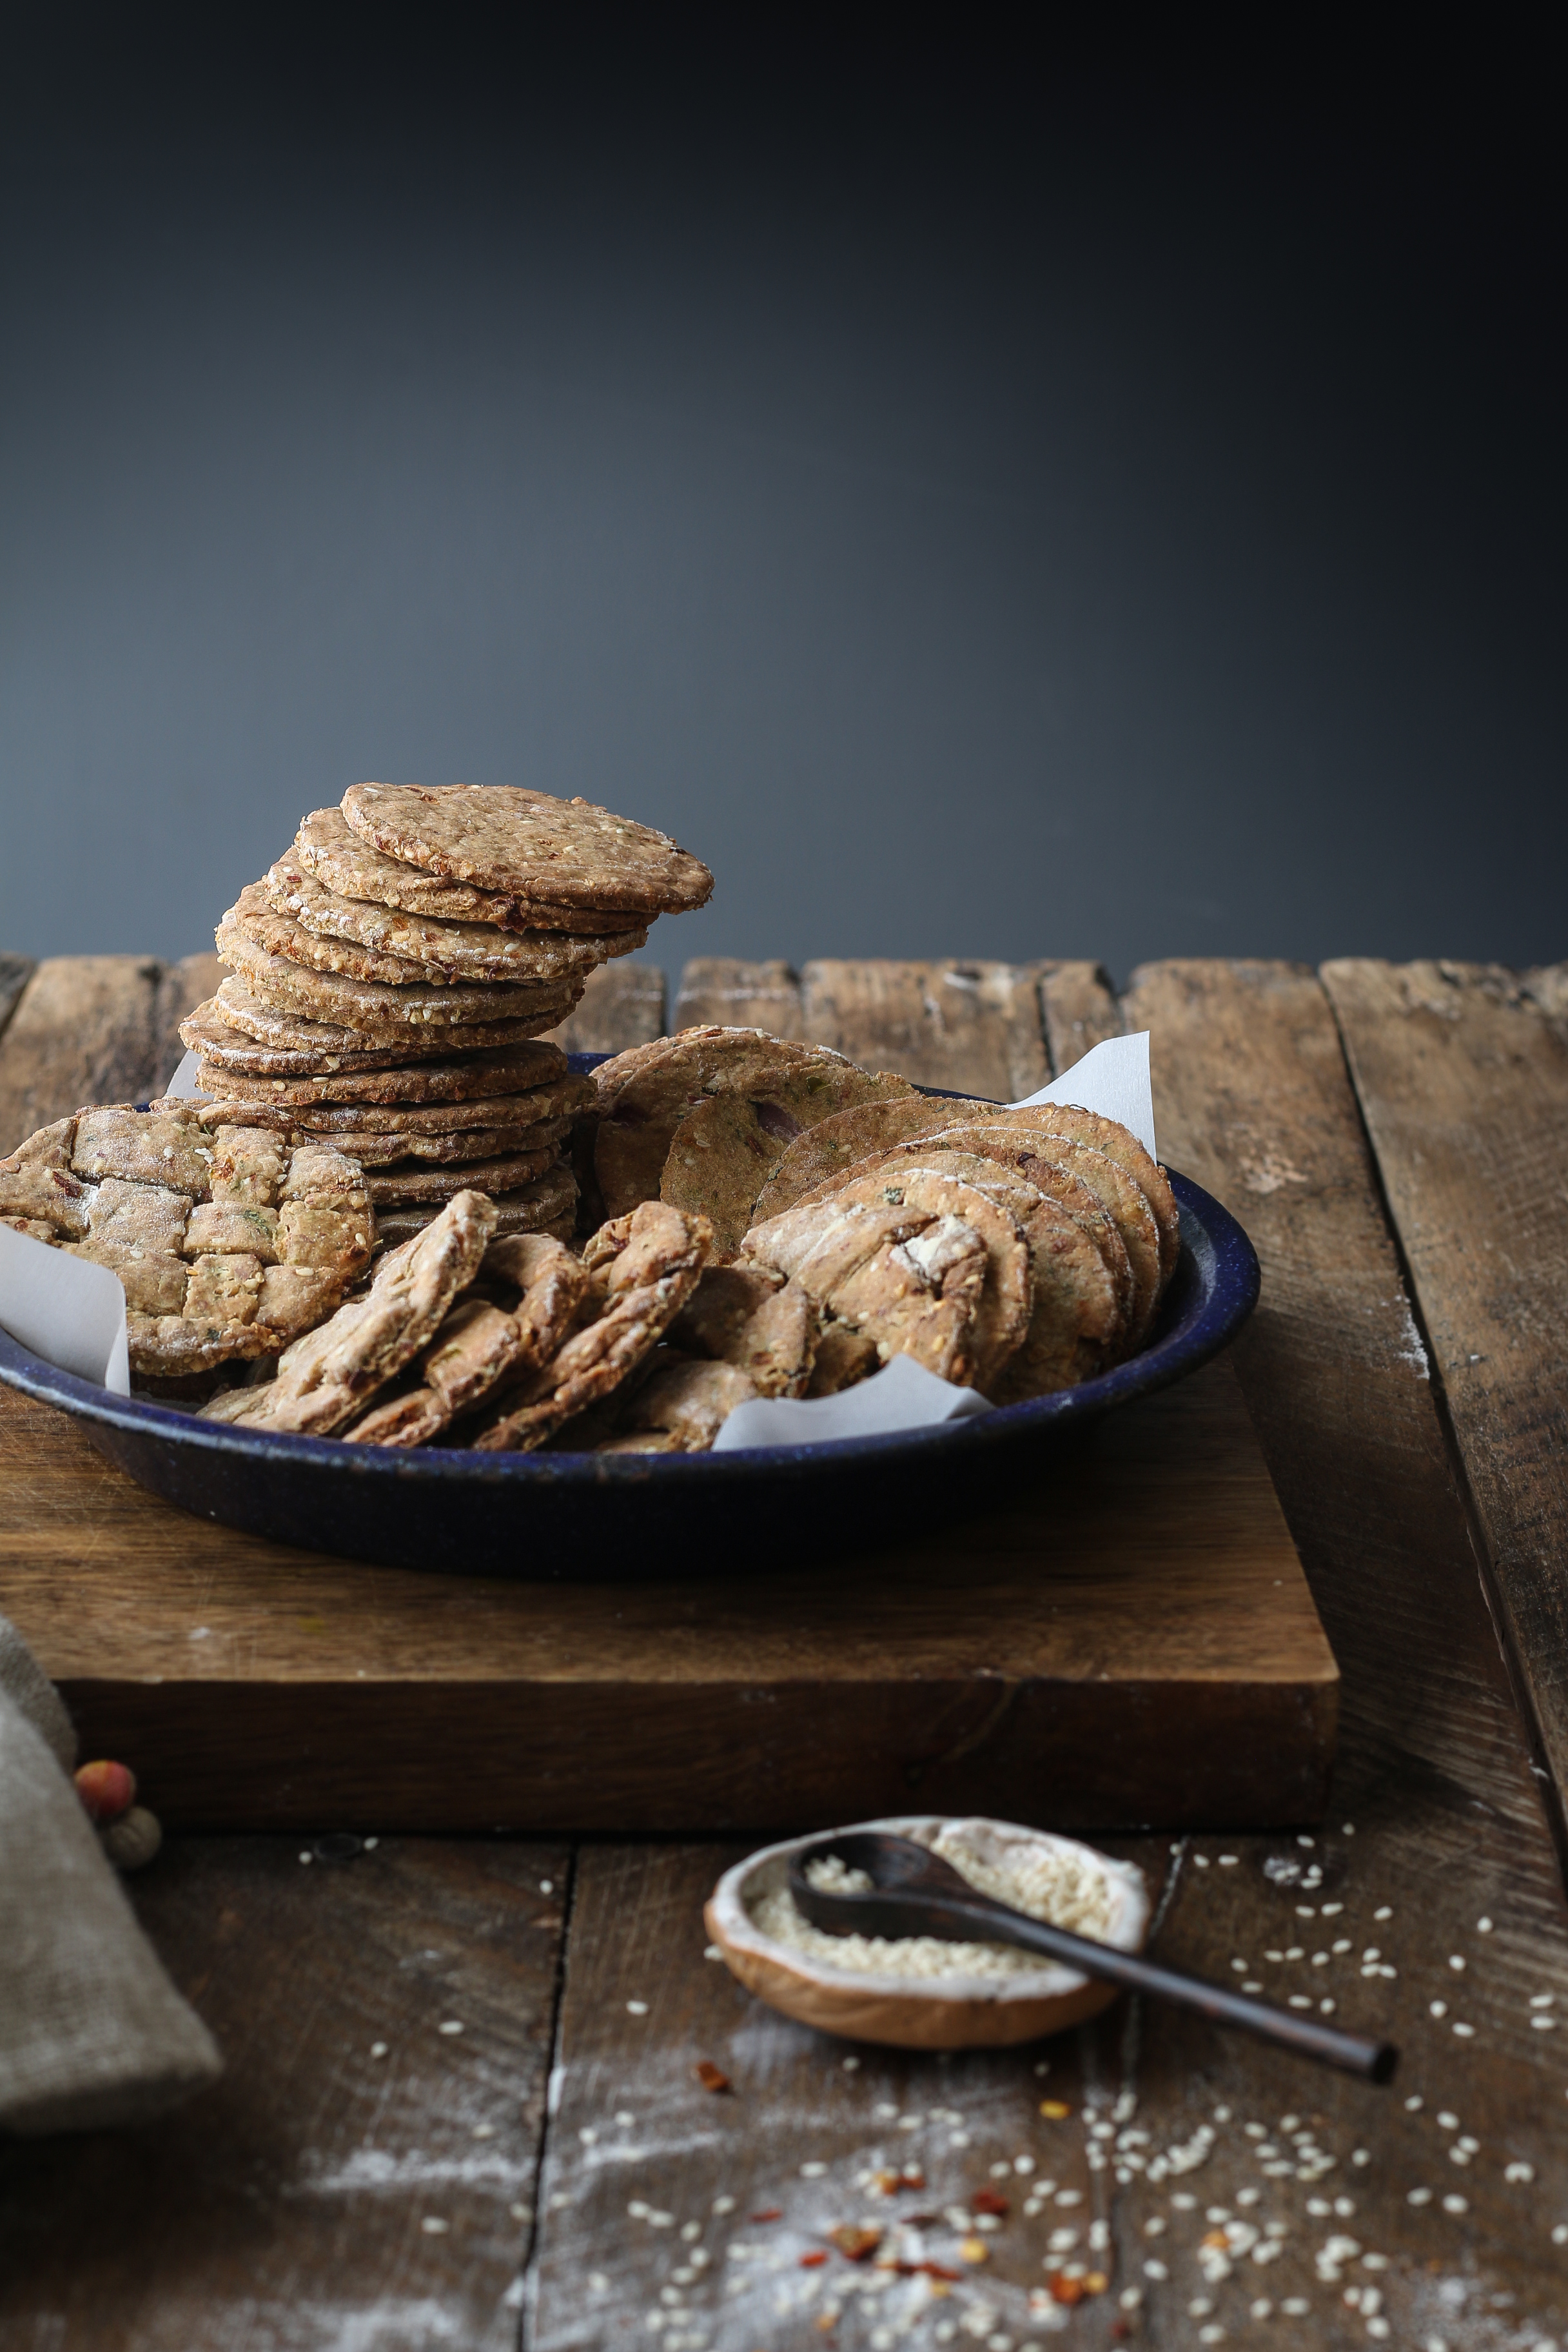 Baked Nippat/ Spiced Cracker with peanuts |foodfashionparty| #bakedcrackers